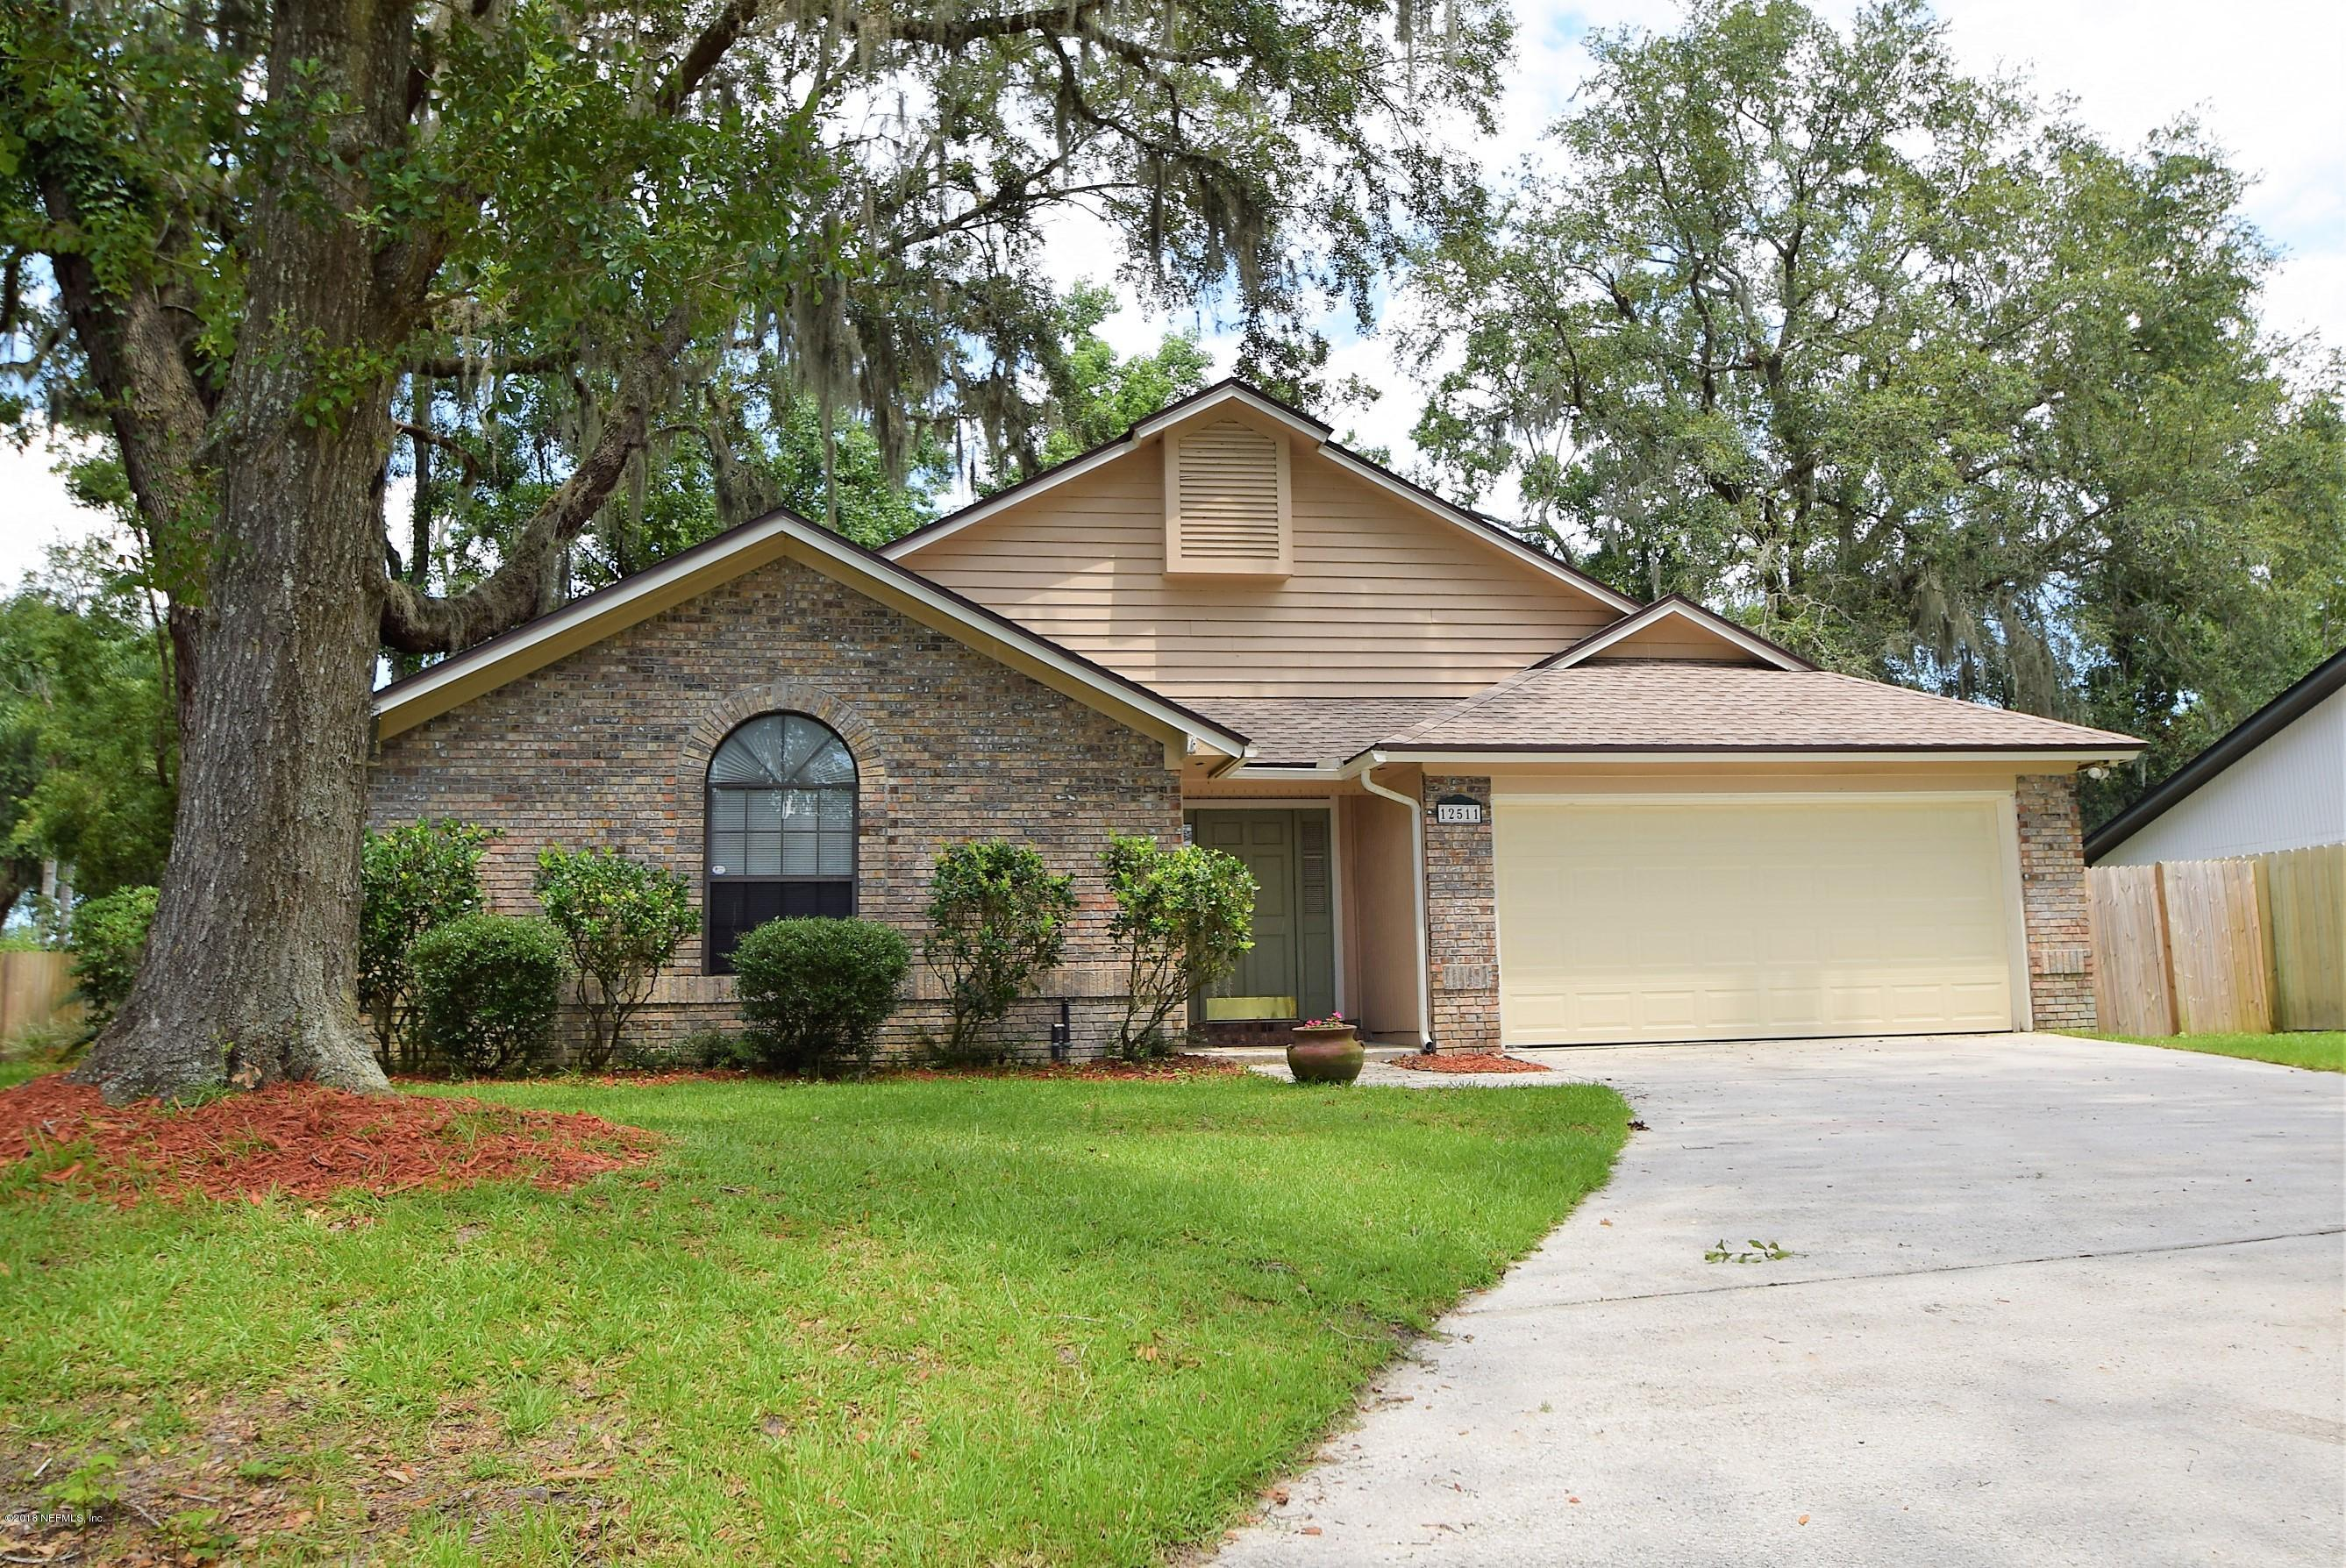 12511  GENTLE KNOLL DR, Julington Creek in DUVAL County, FL 32258 Home for Sale